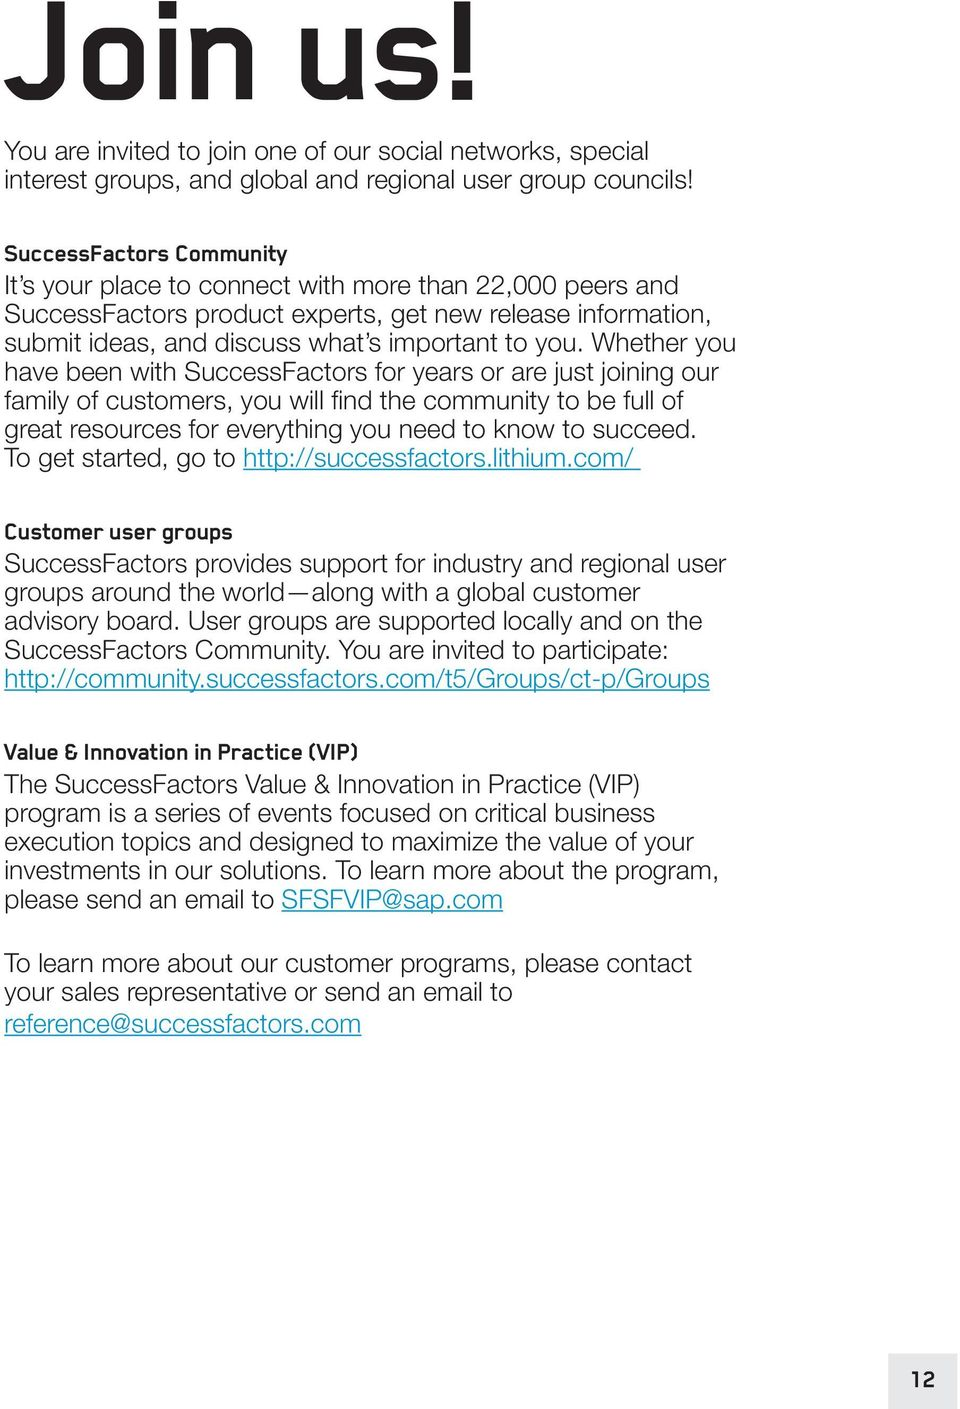 Whether you have been with SuccessFactors for years or are just joining our family of customers, you will find the community to be full of great resources for everything you need to know to succeed.